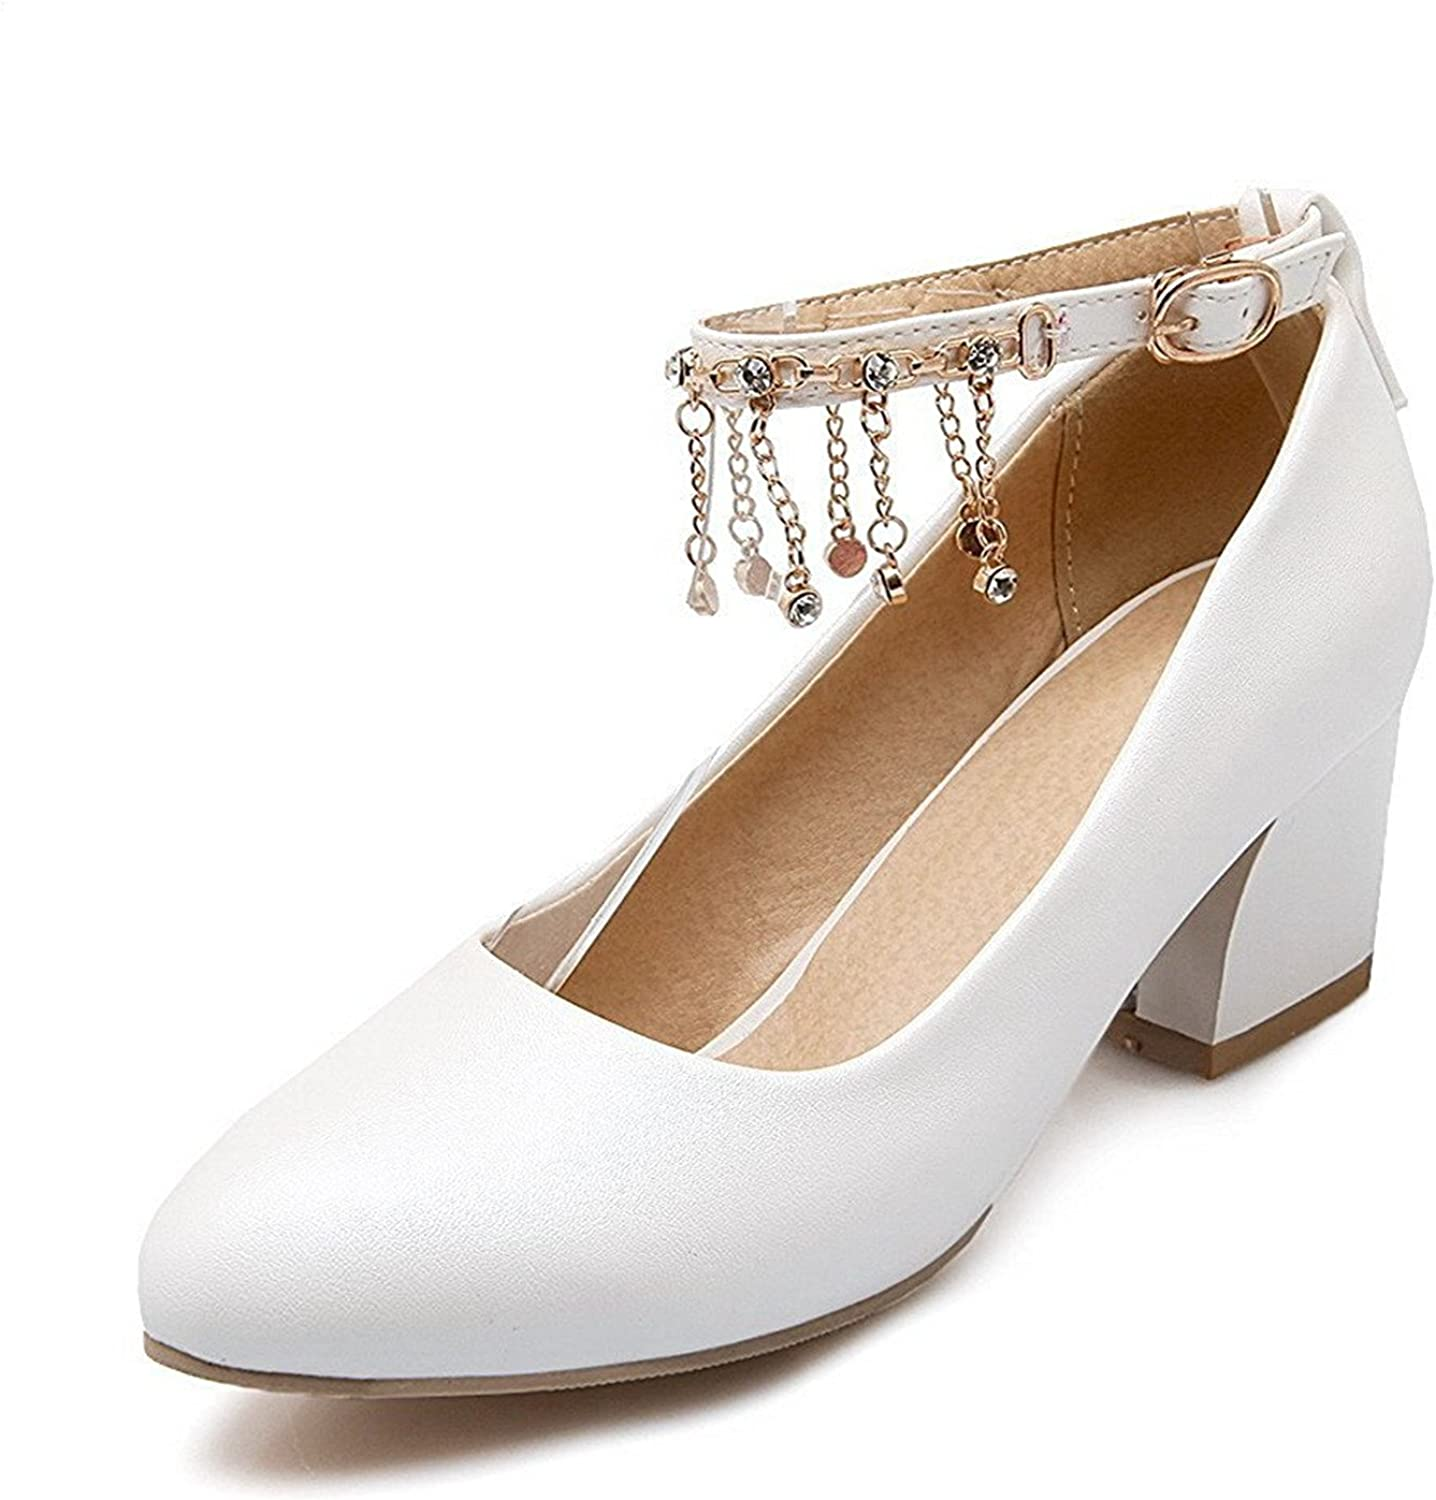 Tirahse Comfortable Women's Solid Soft Material Kitten-Heels Buckle Pointed Closed Toe Pumps-shoes